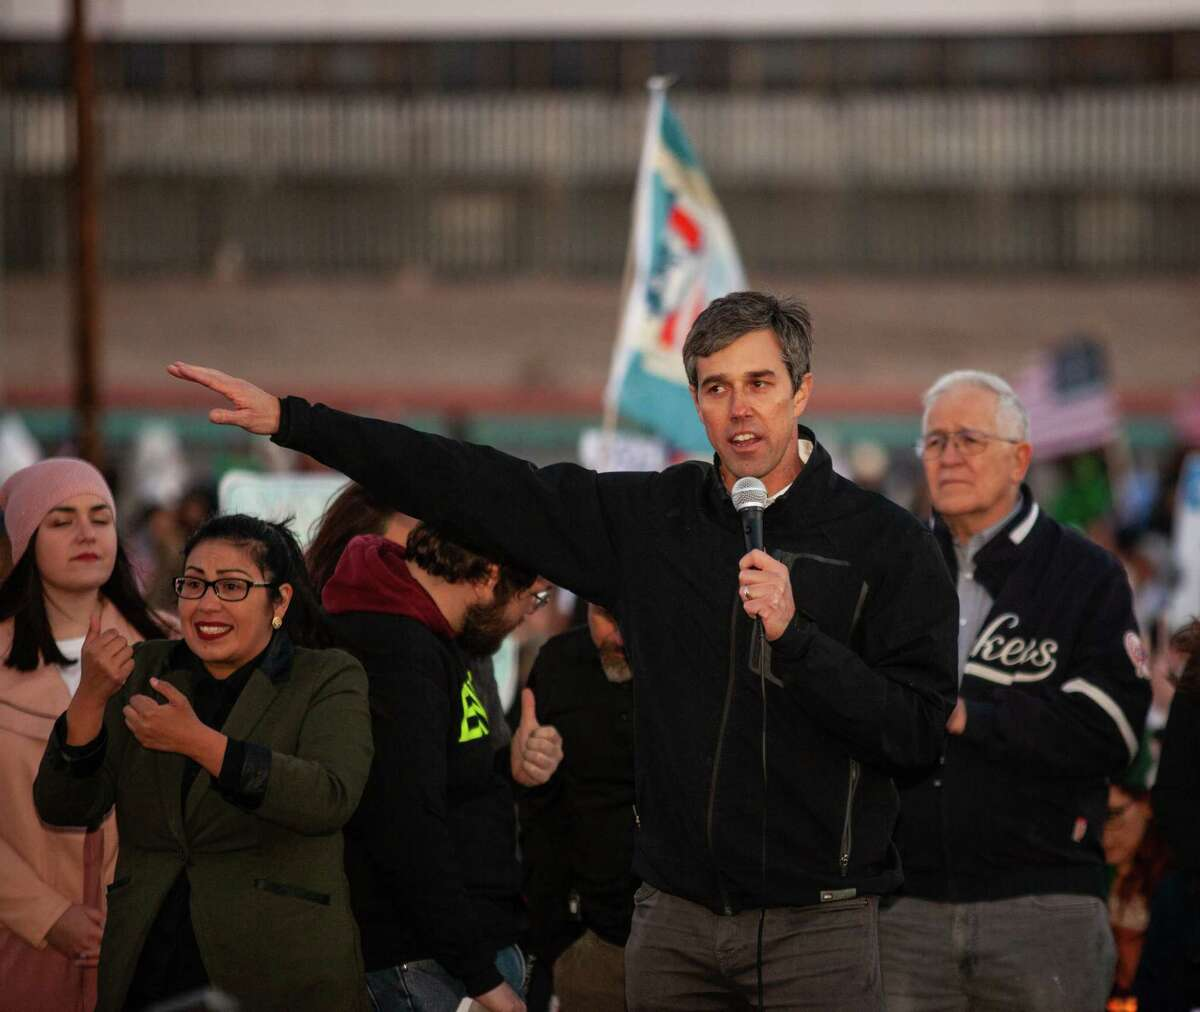 With the border wall in El Paso behind him Beto O'Rourke speaks at a rally Feb. 11, 2019. O'Rourke on Thursday said that if he had the choice, he'd tear out the barrier separating El Paso from Ciudad Juarez, Mexico.